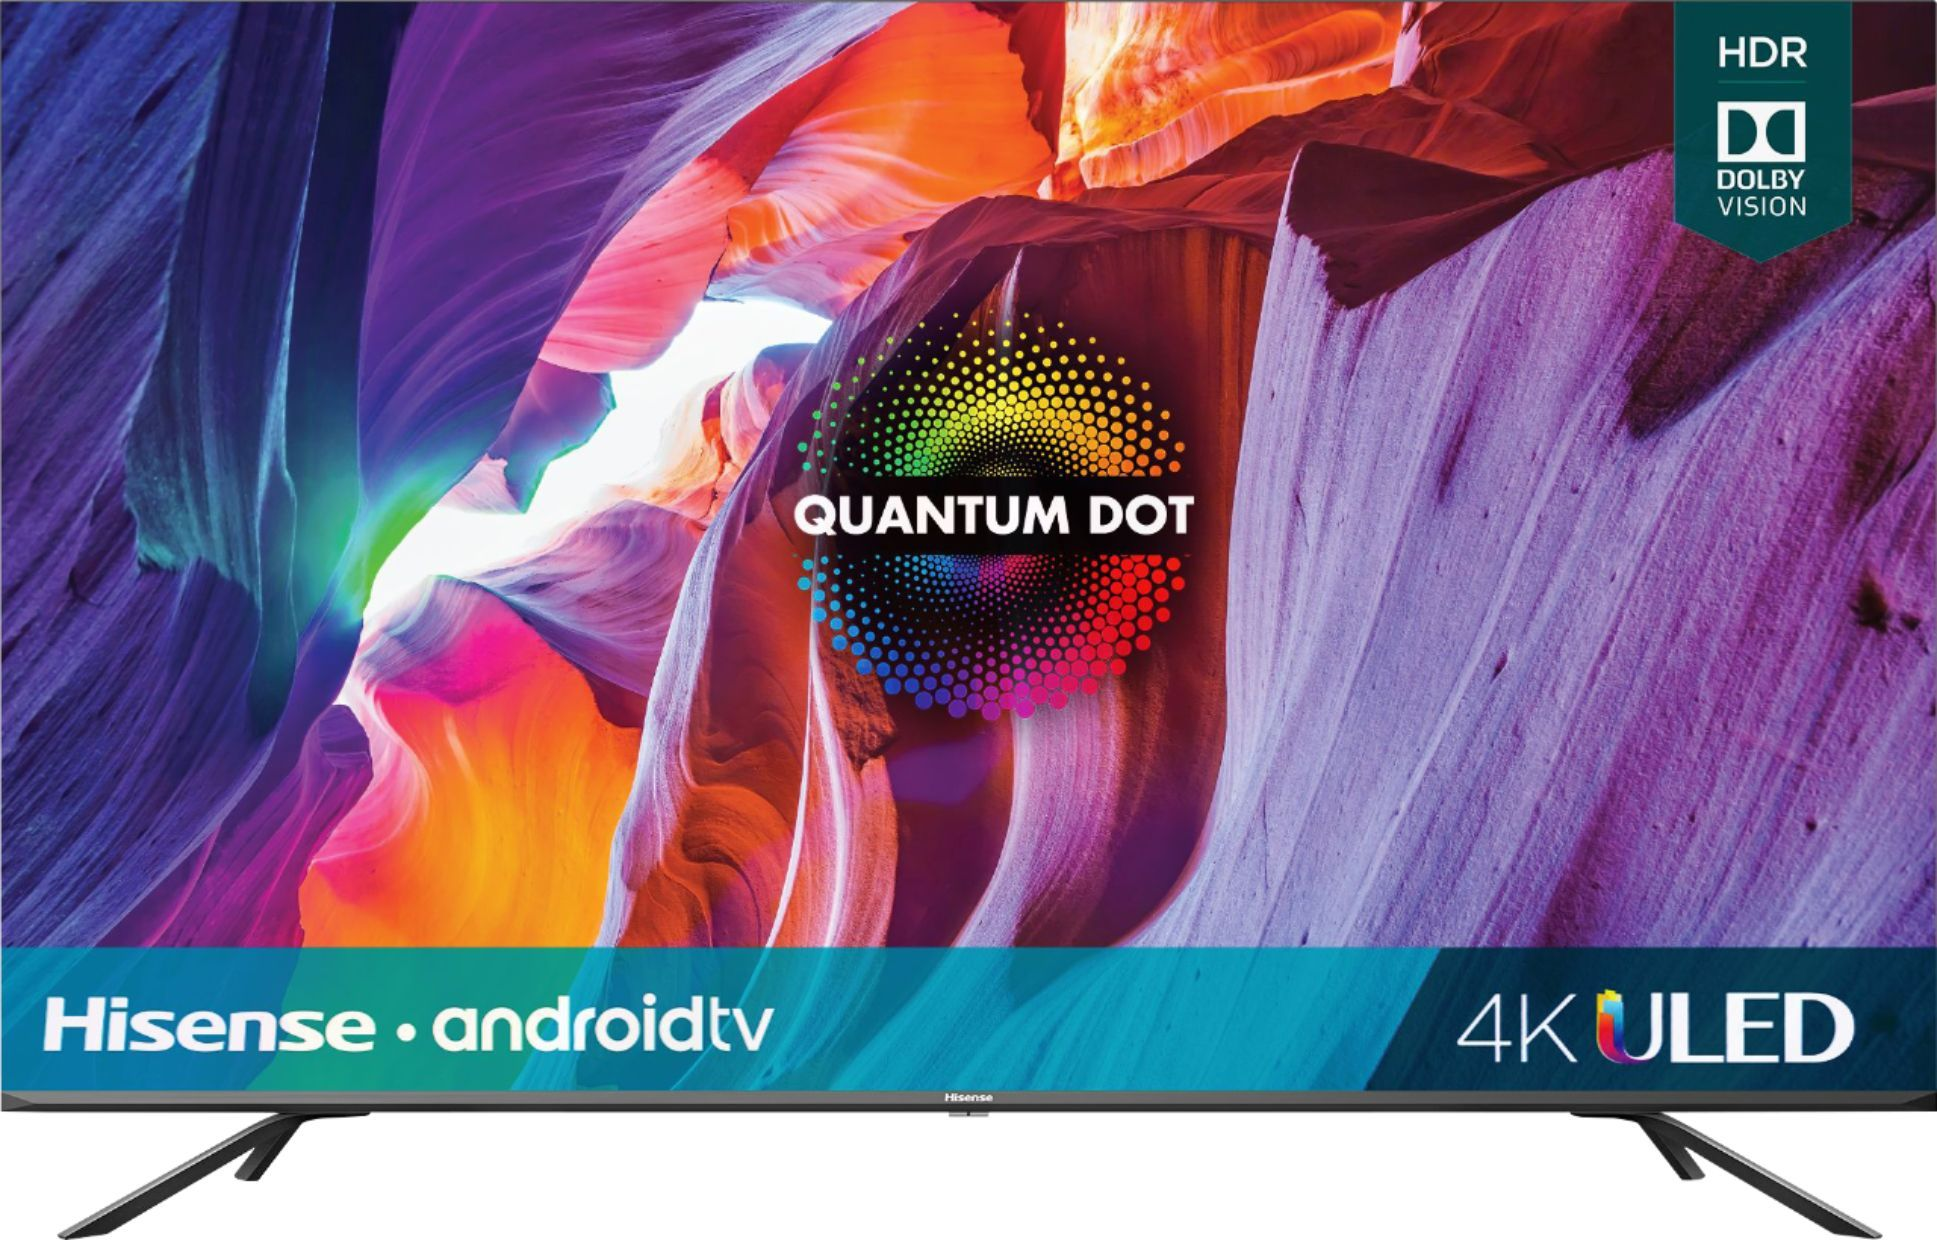 Hisense H8G Quantum Series 4K ULED Android Smart TV